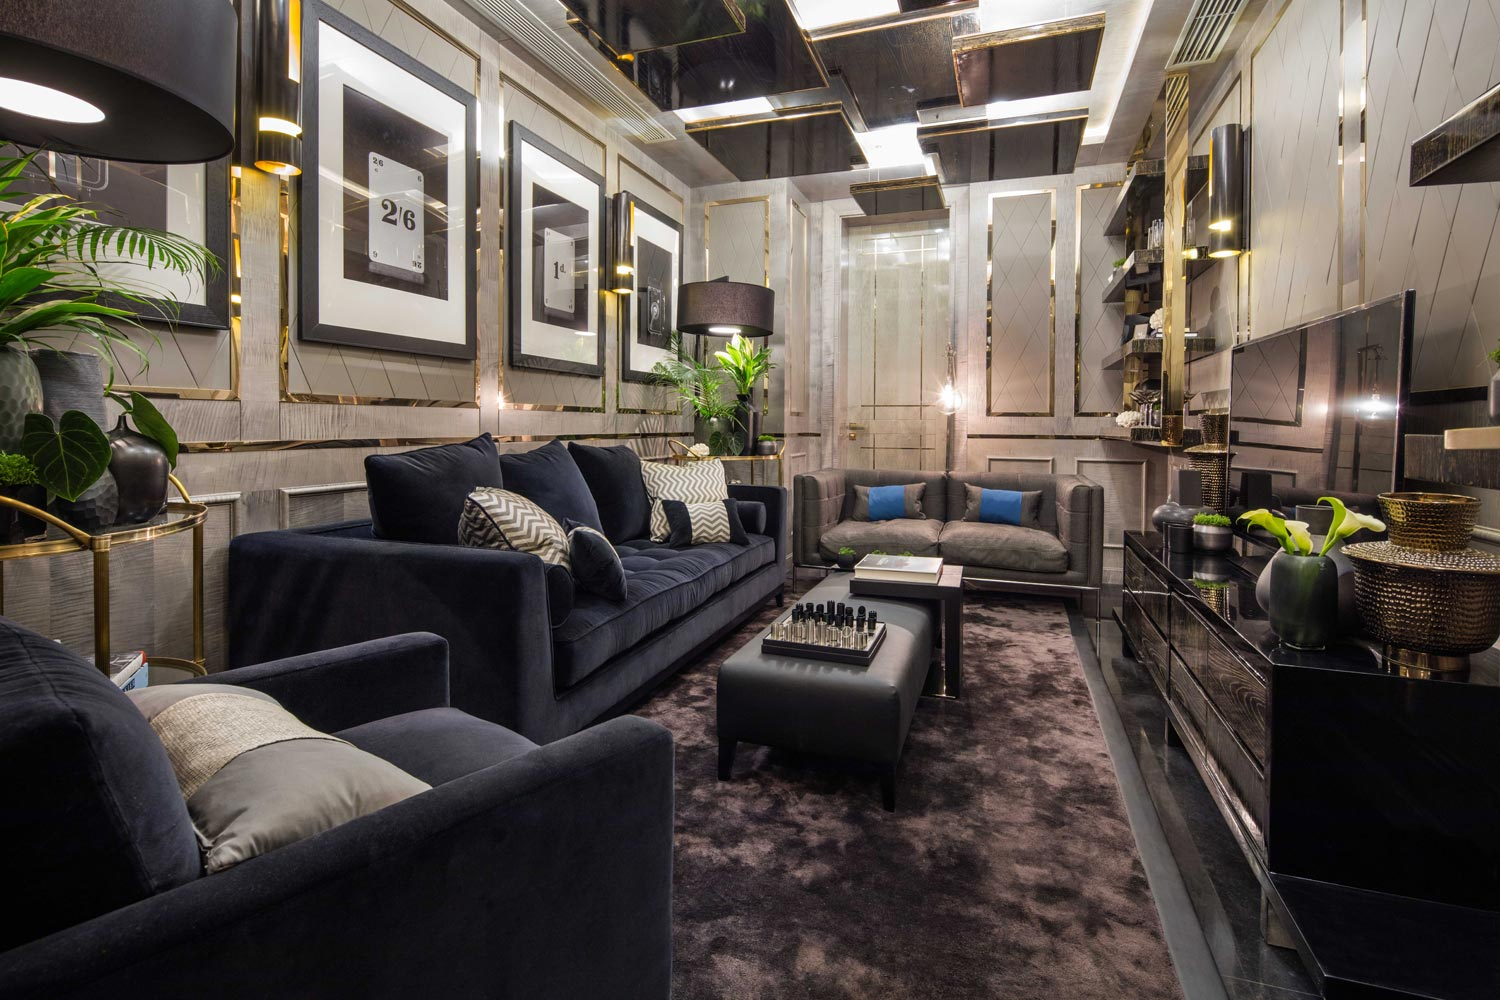 Top Interior Designers, design, interiors, designers, luxury Top Interior Designers Top Interior Designers: Kelly Hoppen kelly hopen   interior design9